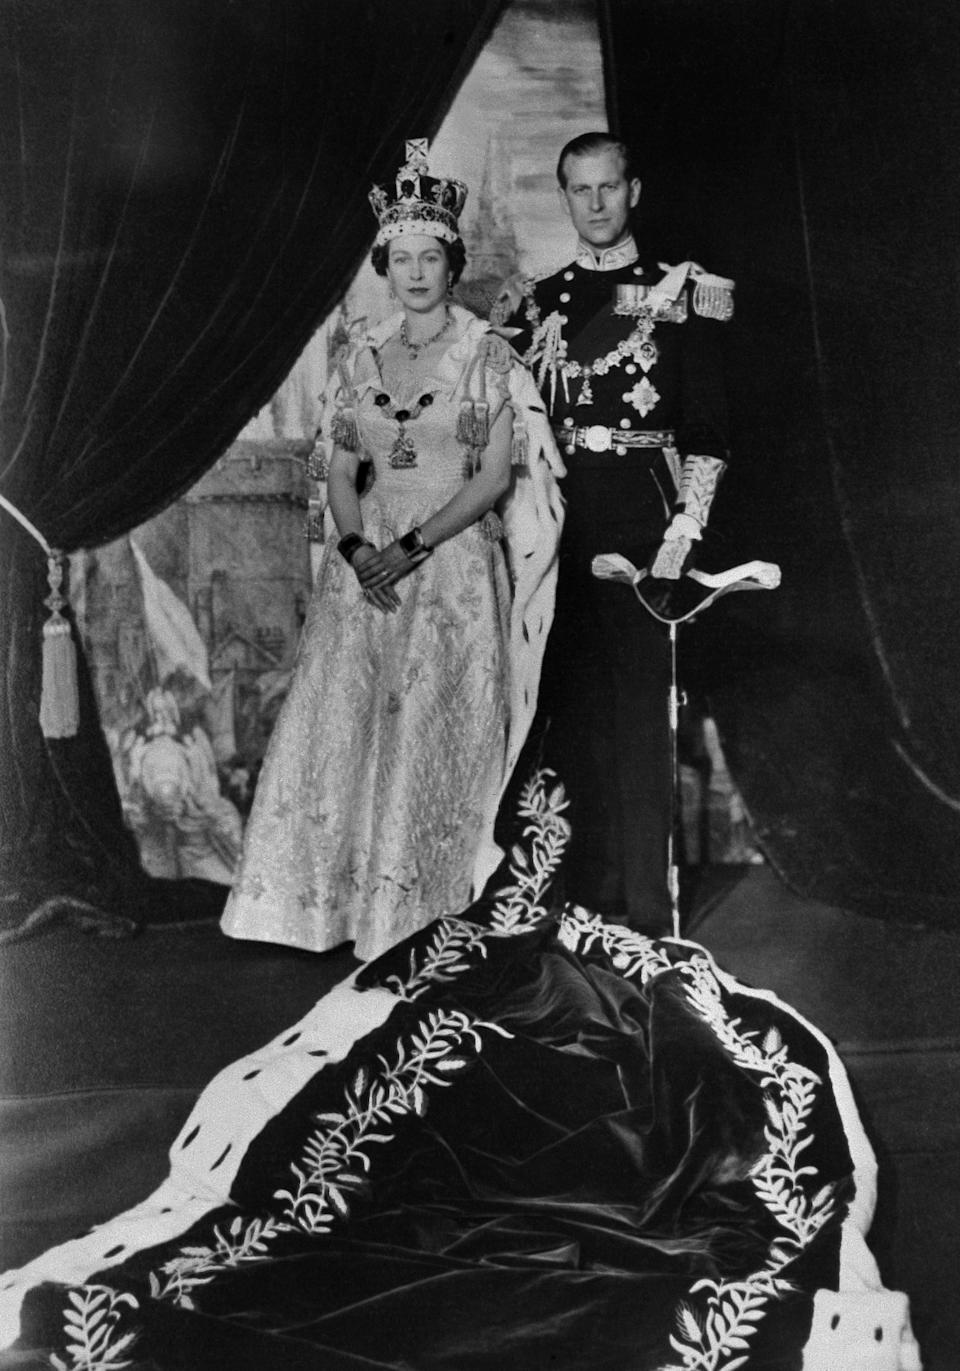 "<p>With the sudden death of her father in 1952, Elizabeth became queen at just 25-years-old. Ahead of her coronation the following year Prince Philip was required to abandon his promising military career to serve as his queen's ""liege man of life and limb."" Photo: Getty Images.</p>"